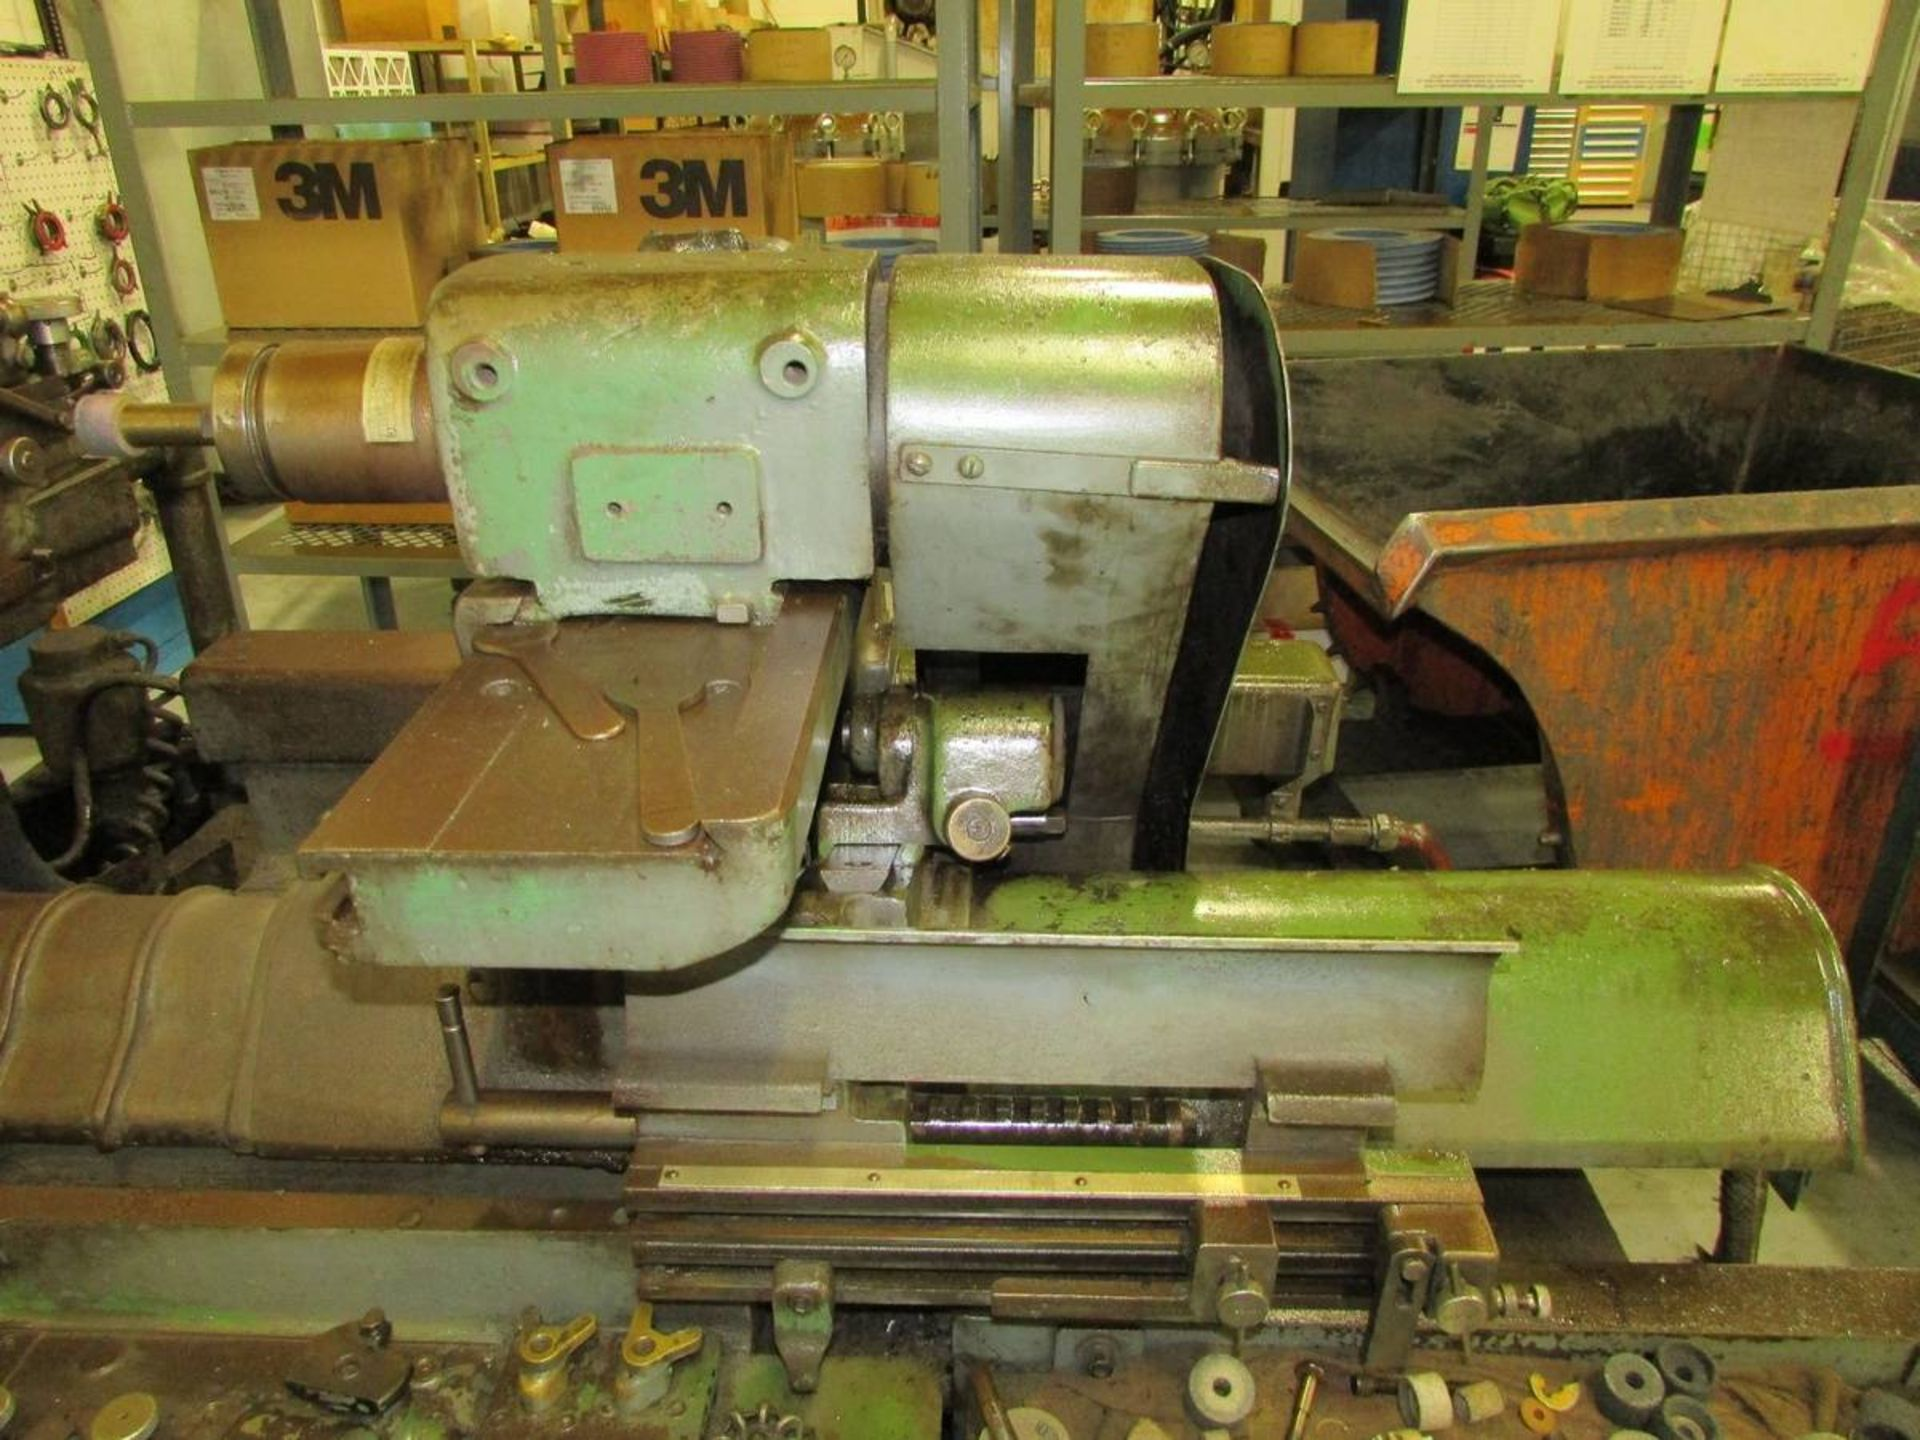 1981 Bryant 1116 ID Cylindrical Grinder - Image 11 of 20